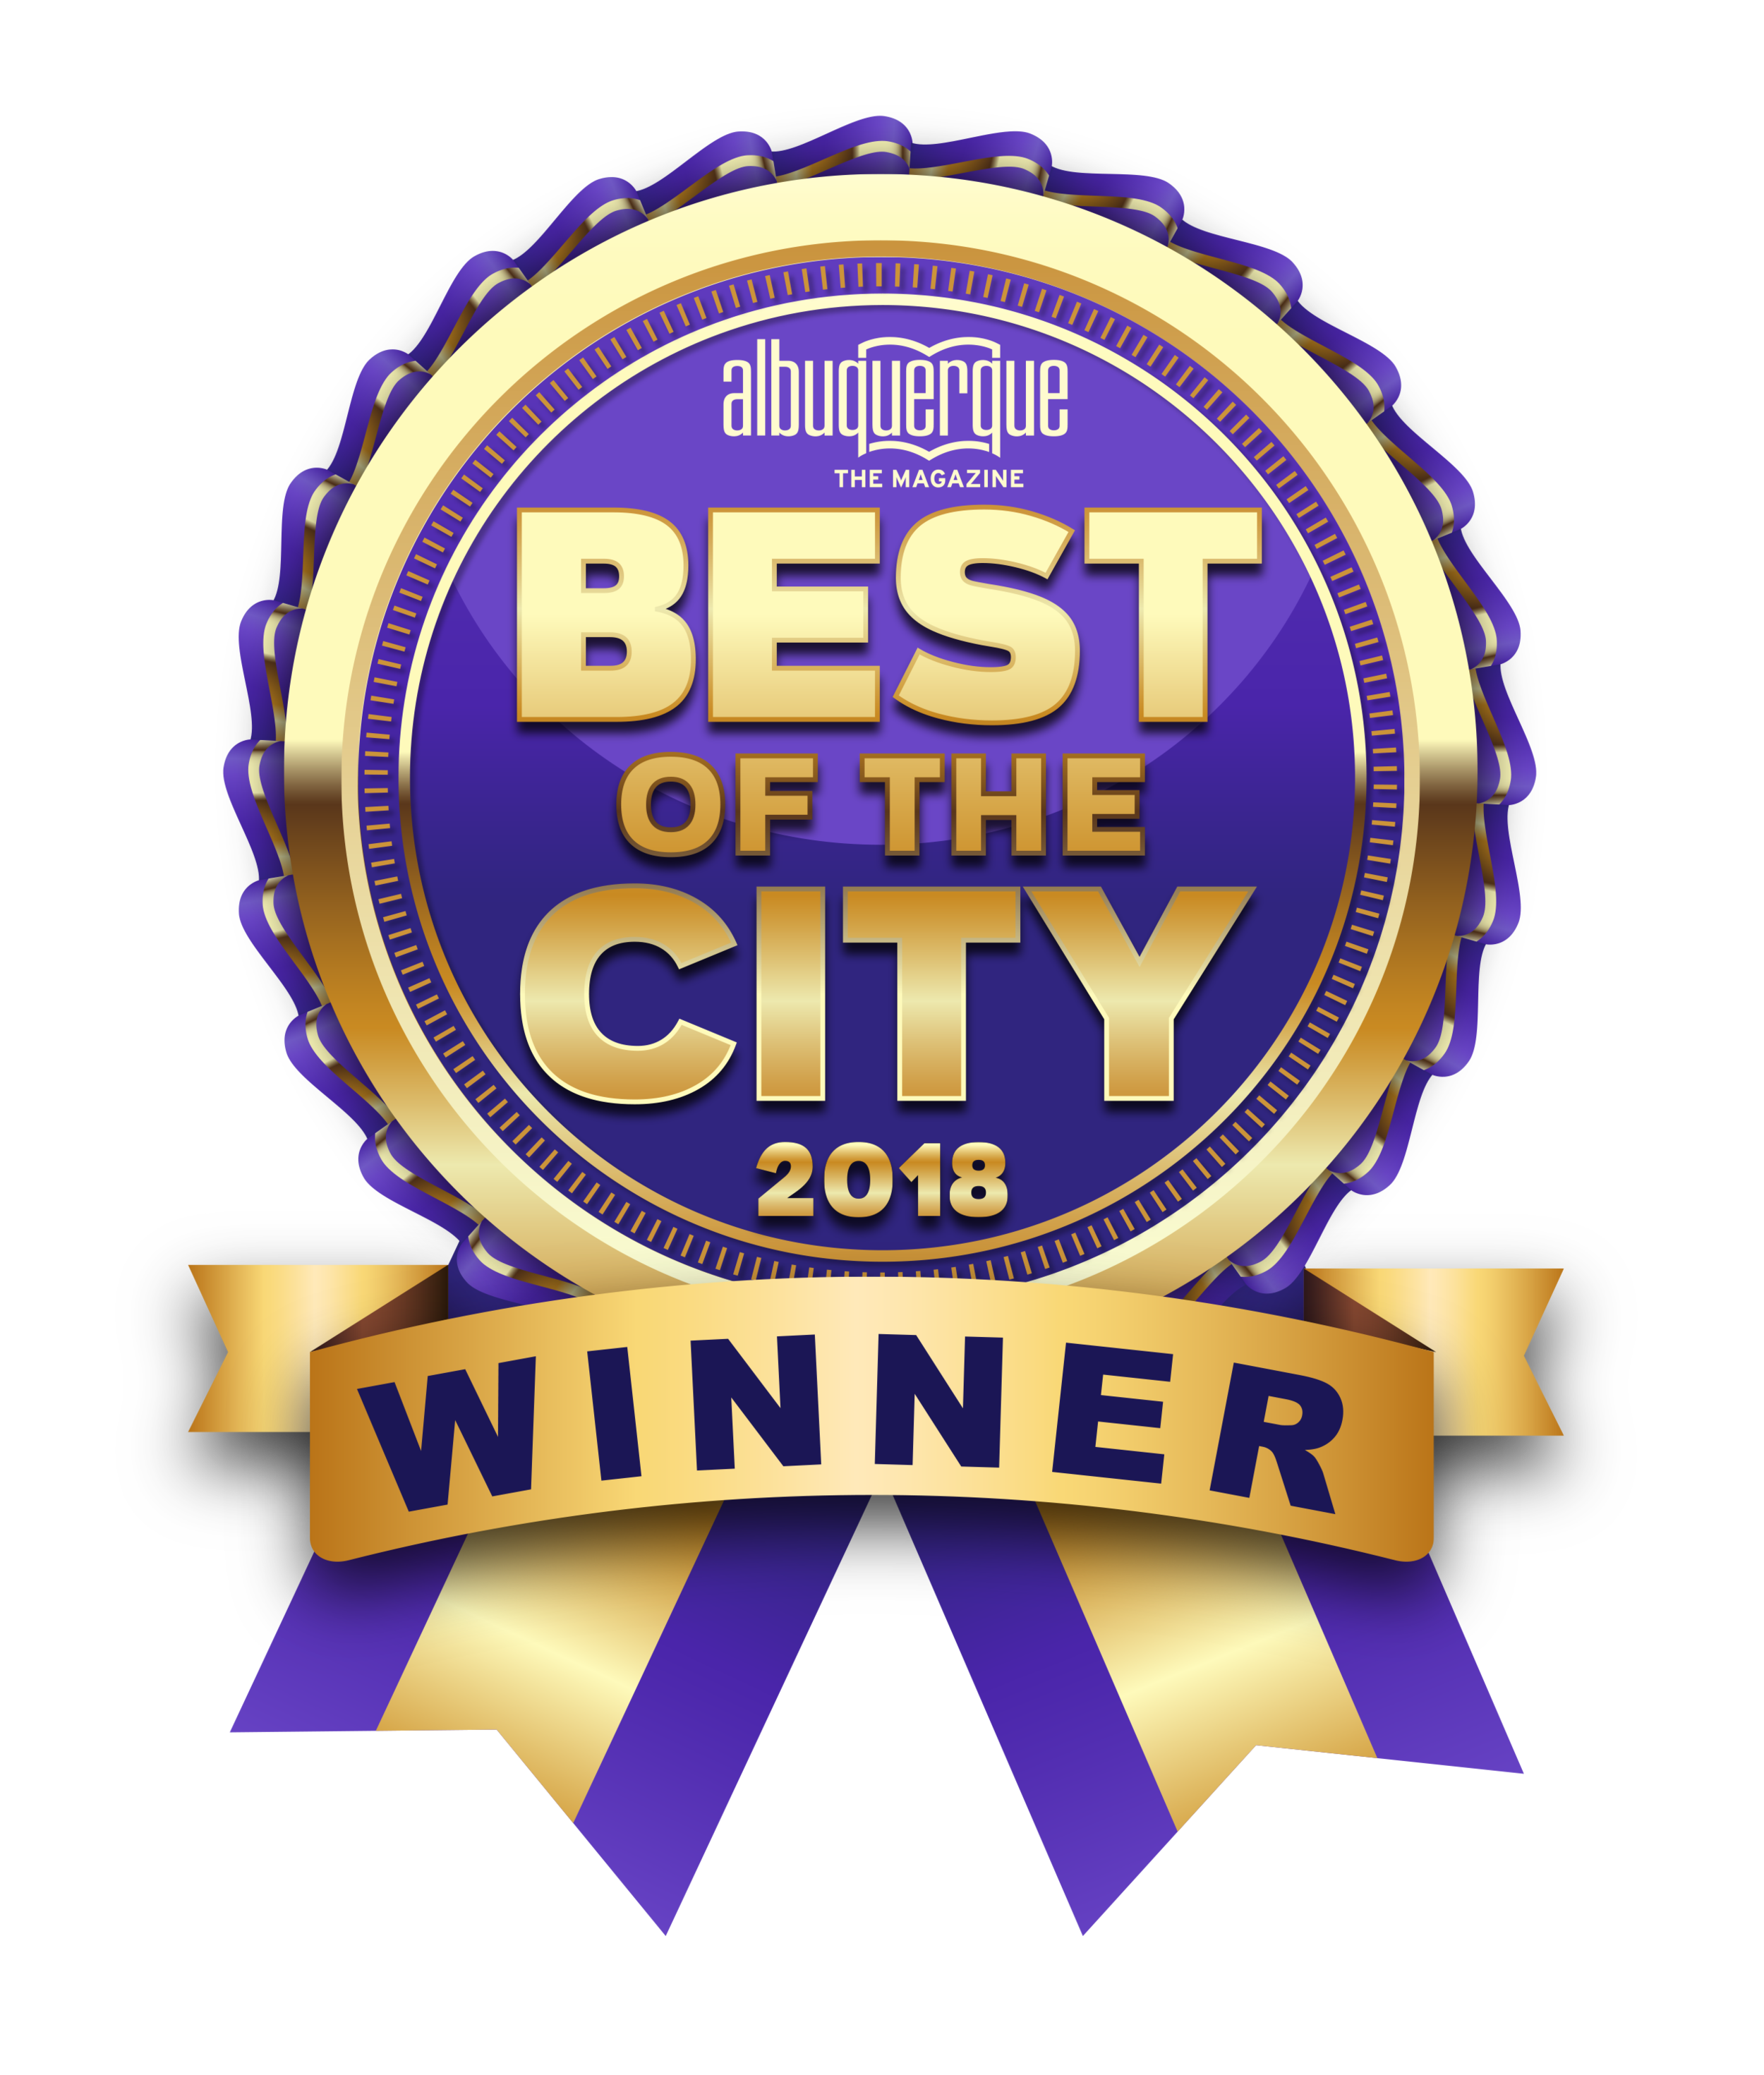 We are Best of City 2018 - another consecutive year!